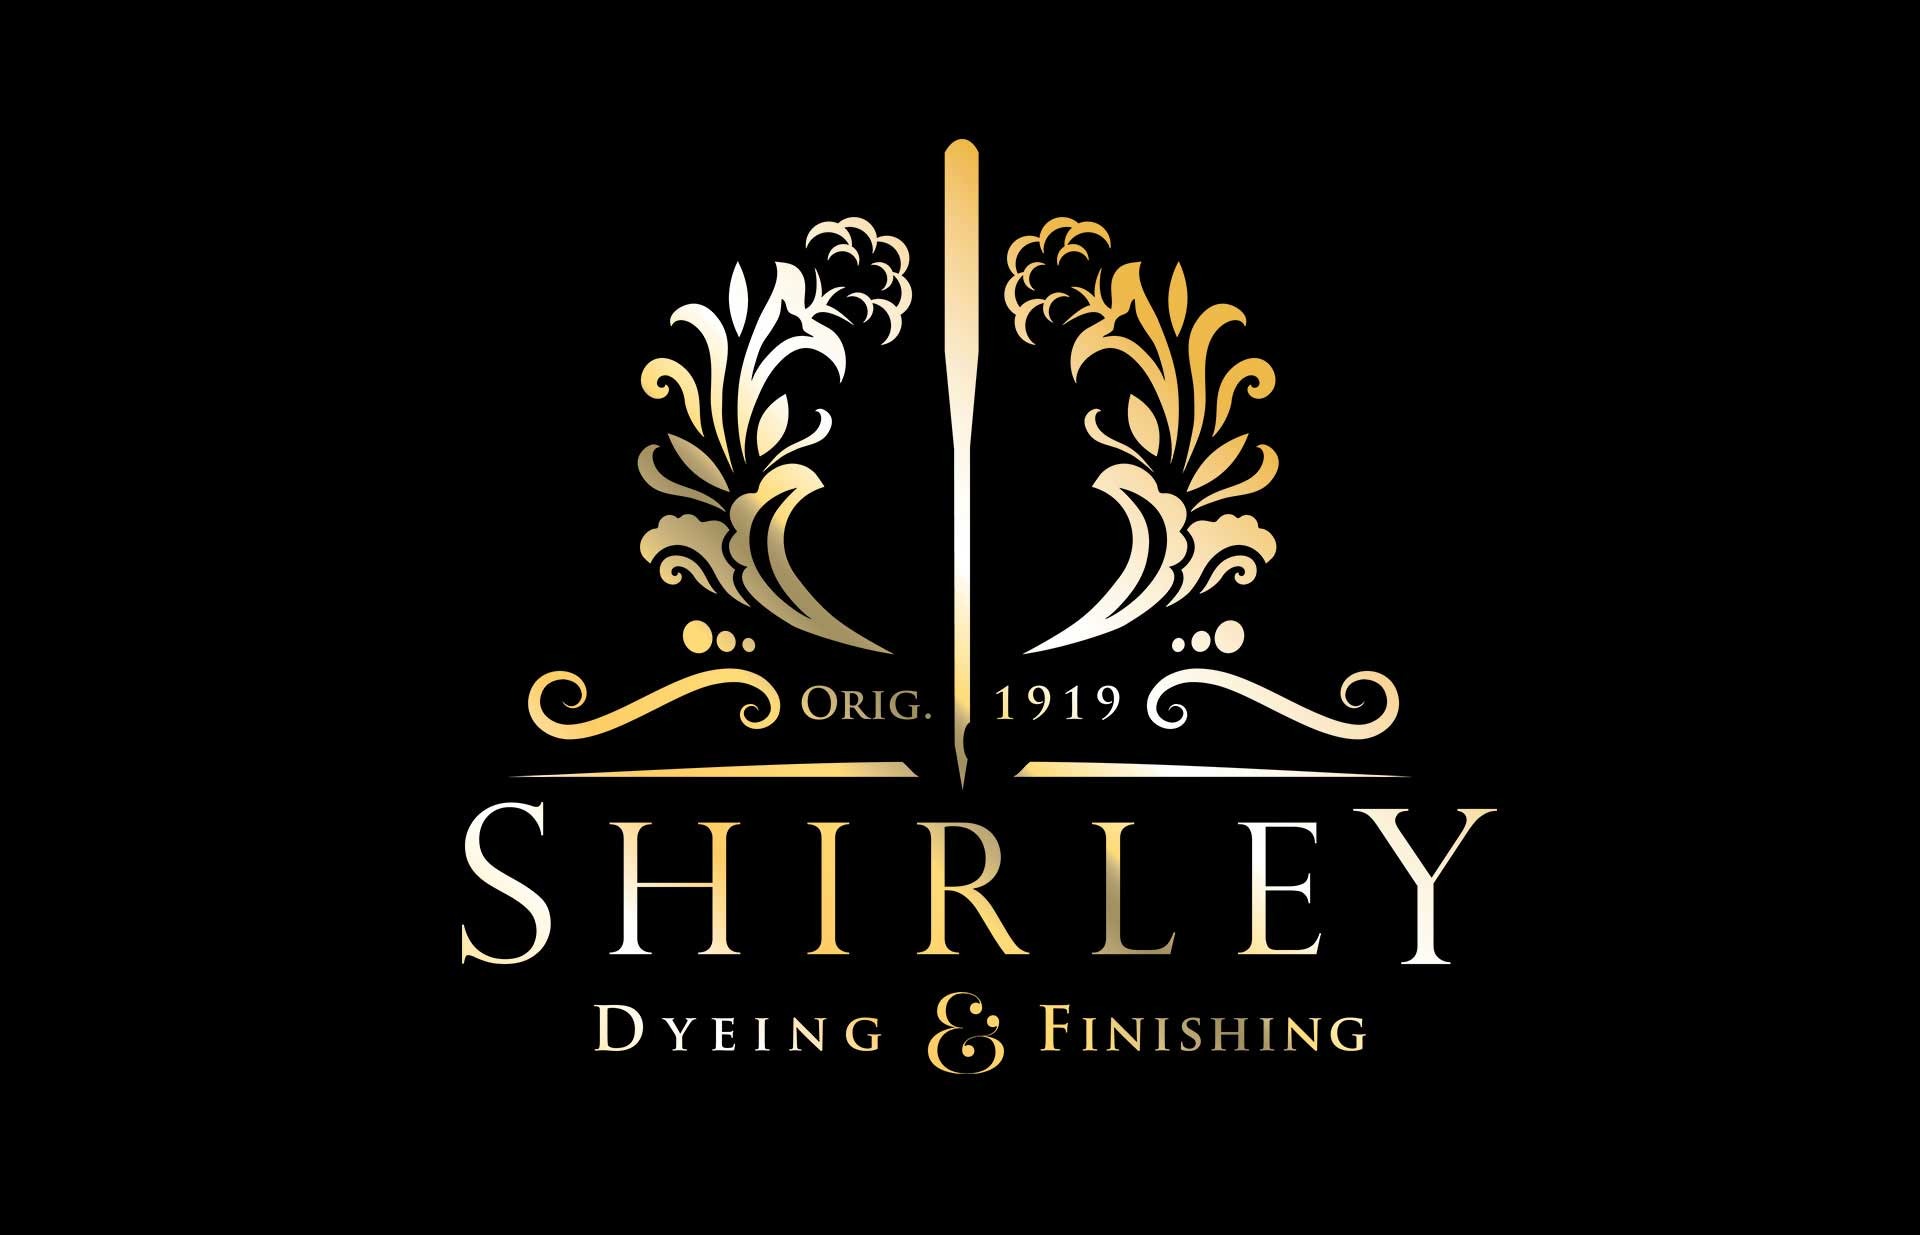 Shirley Dyeing and Finishing logo in gold on black. Designed by Twistedgifted.